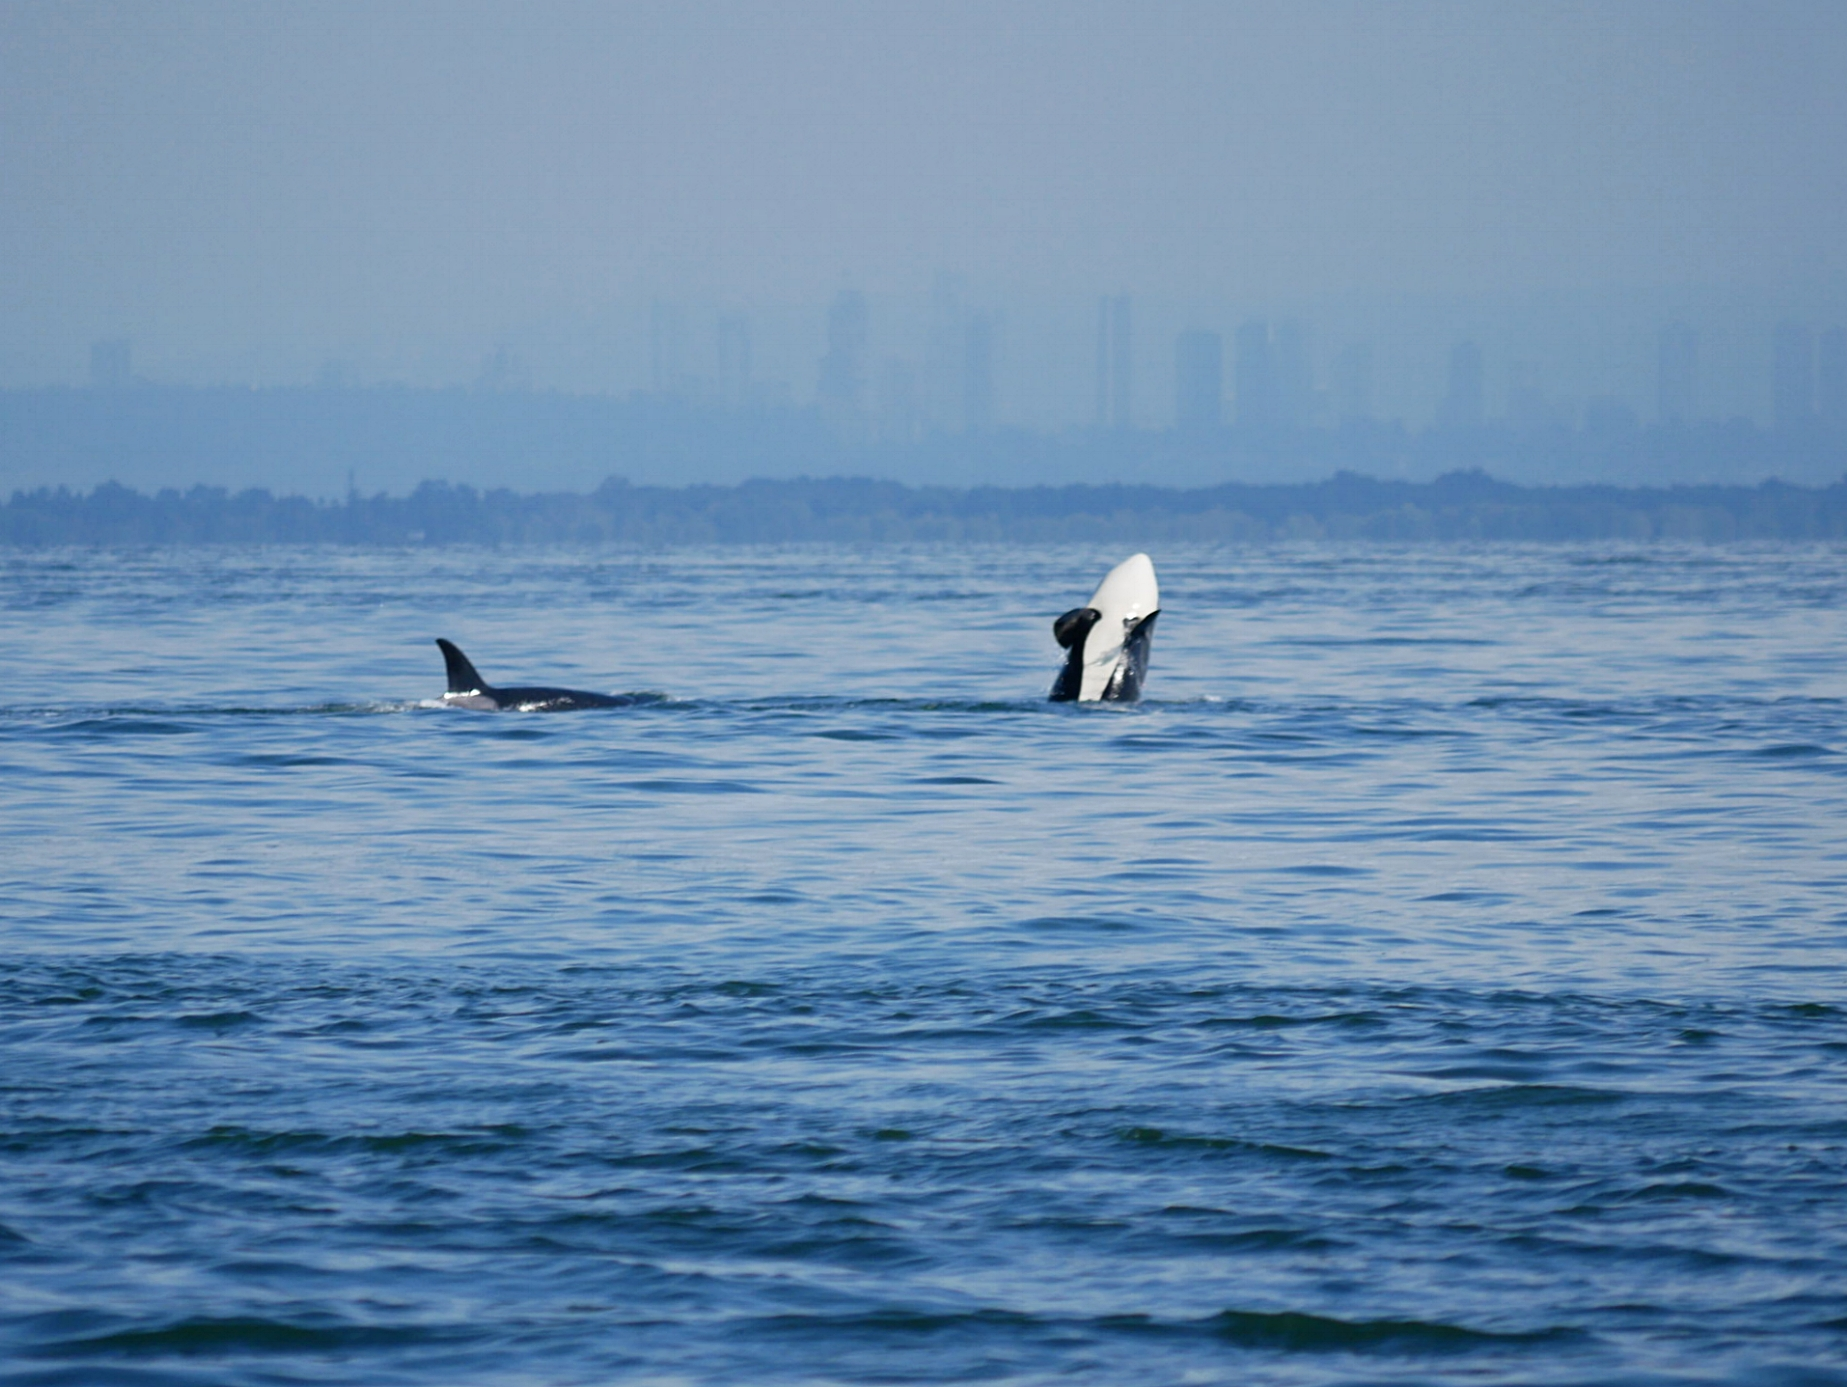 A juvenile orca does a half breach in front the Greater Vancouver skyline. Photo by Rodrigo Menezes